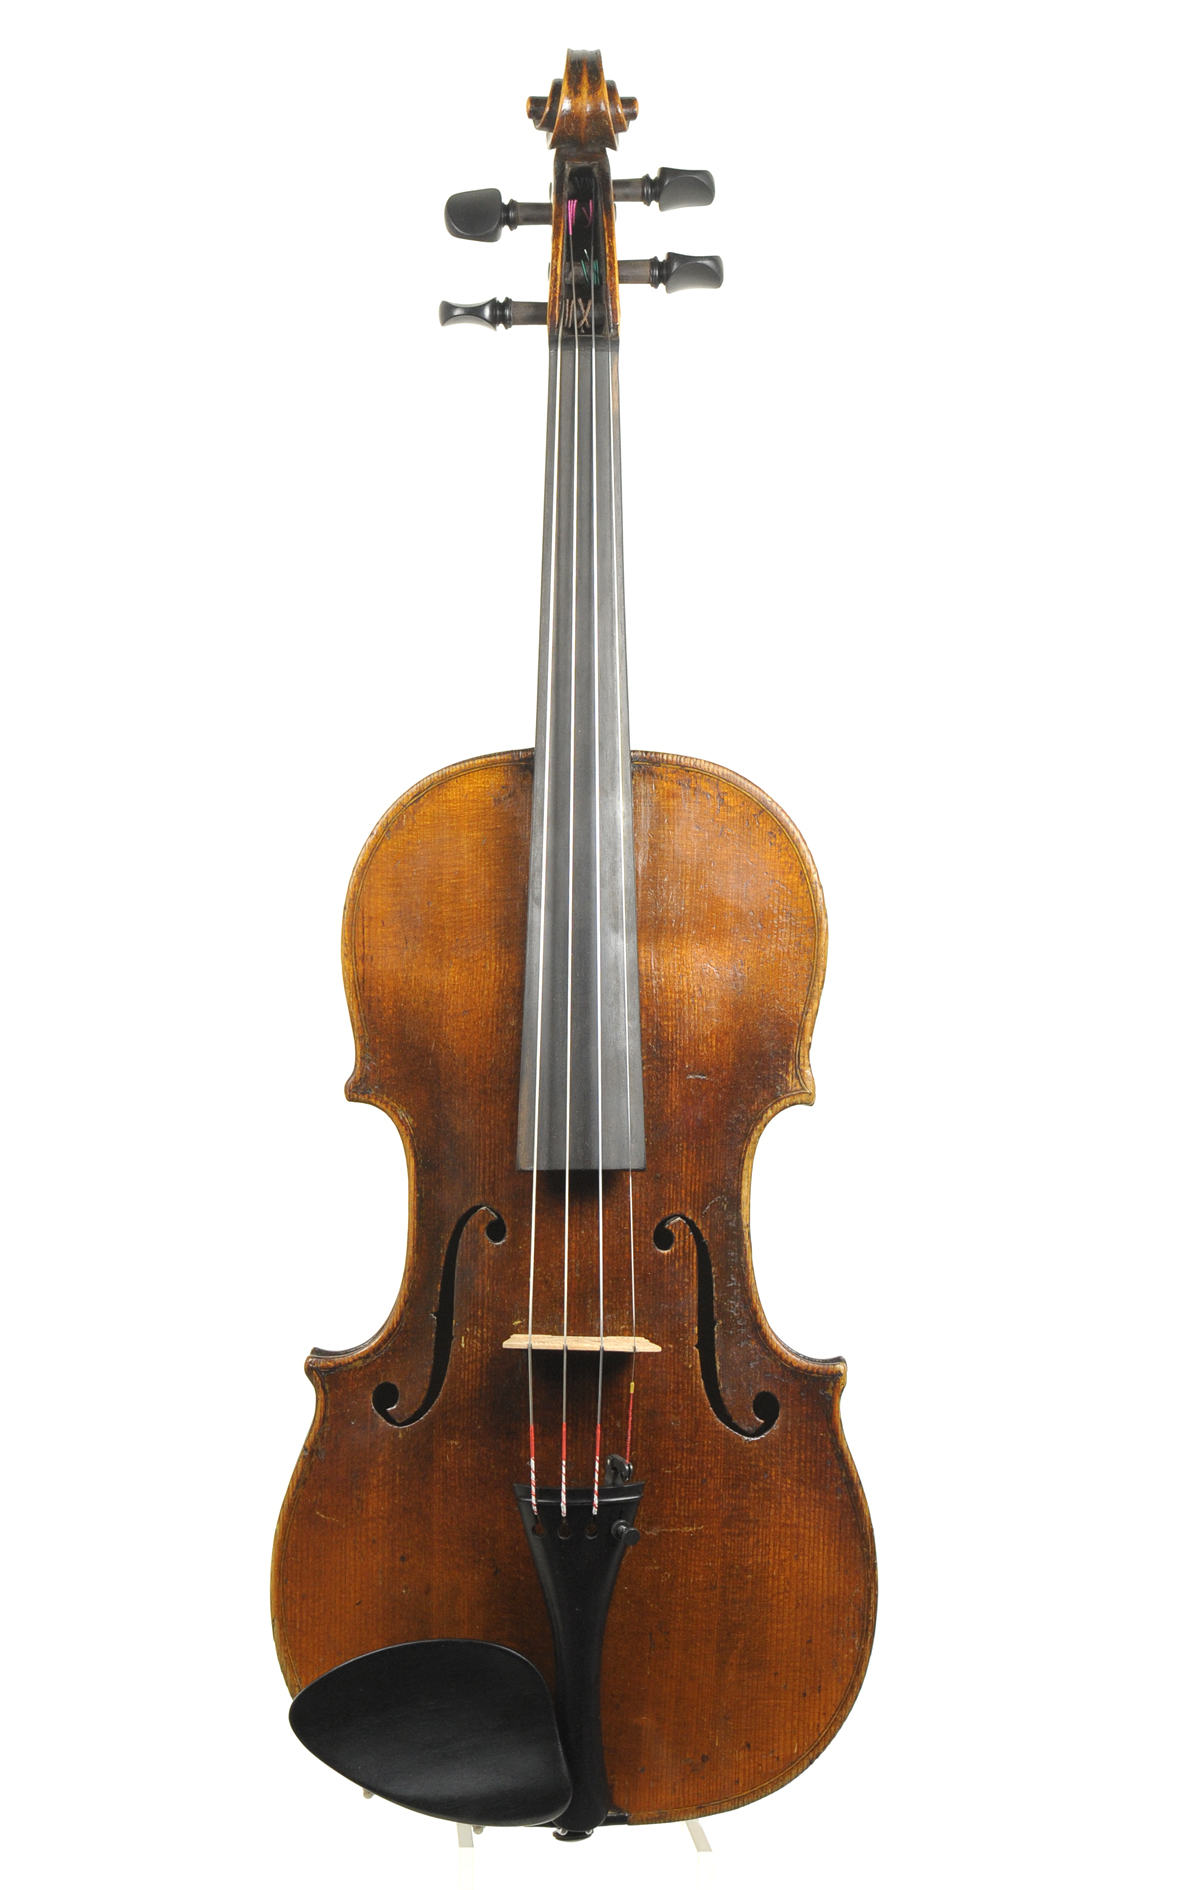 A Brief History of String Instruments